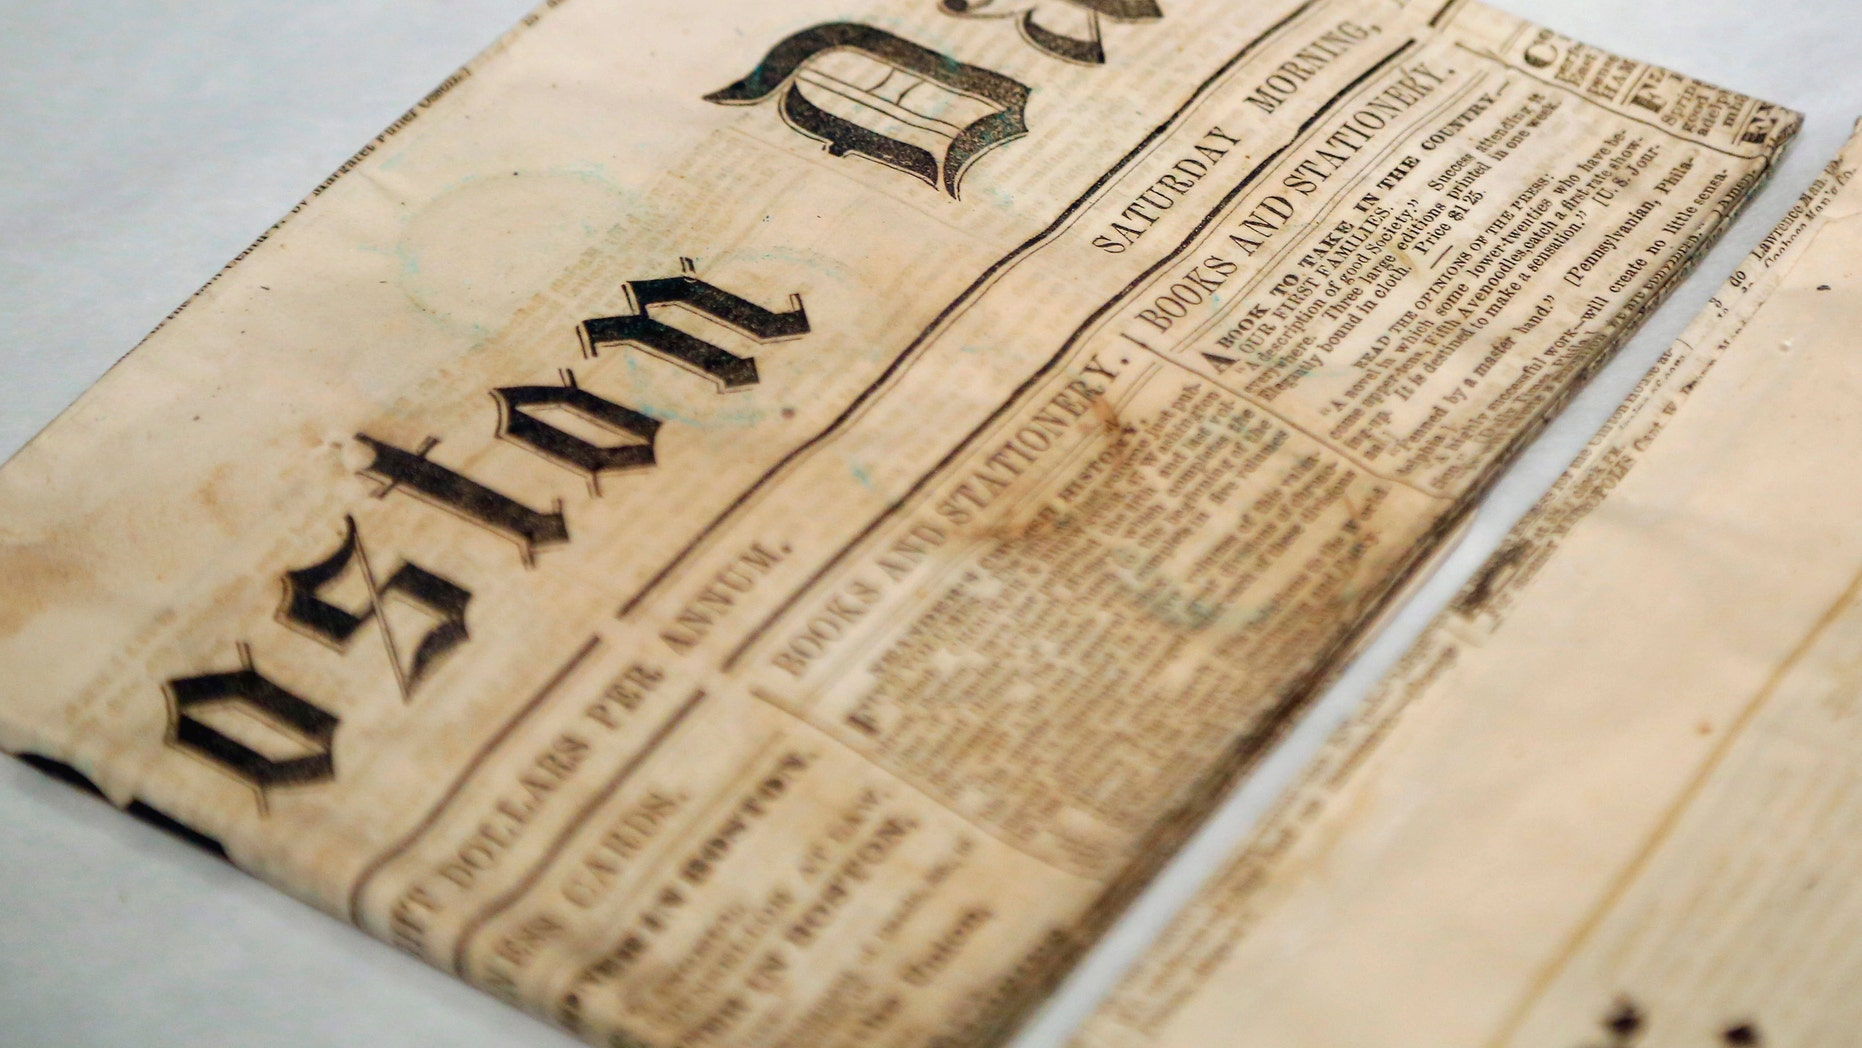 Newspapers removed from a time capsule, which was placed under a cornerstone of the State House in 1795, sit in archival boxes at the Museum of Fine Arts, Boston, Massachusetts, January 6, 2015.